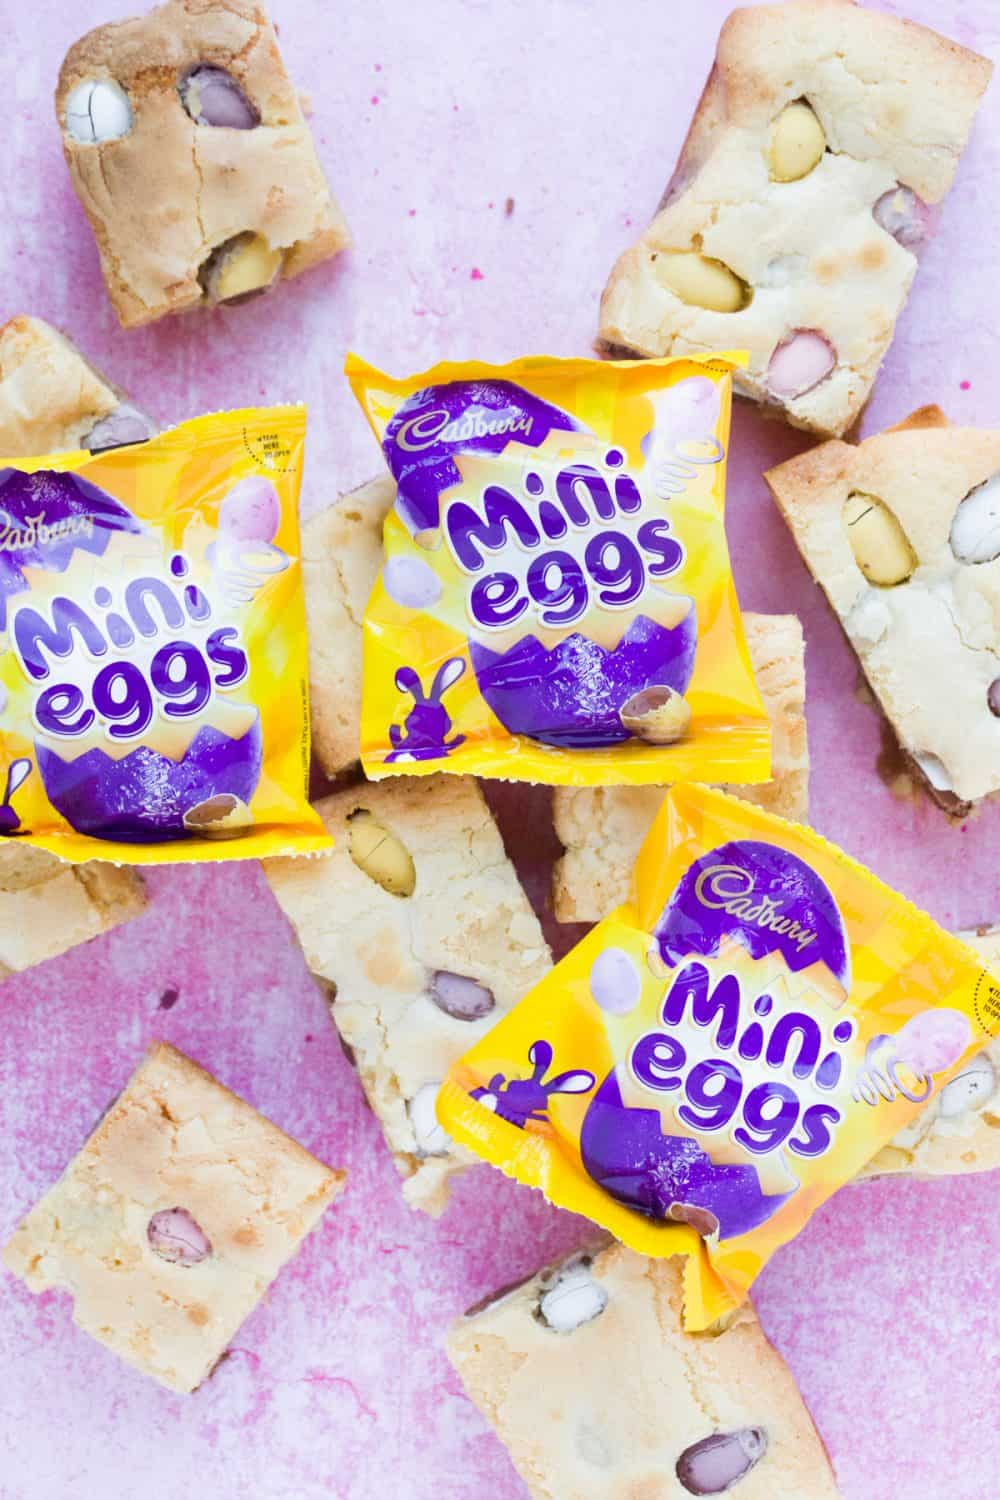 Slices of mini egg blondies with packets of Cadbury.